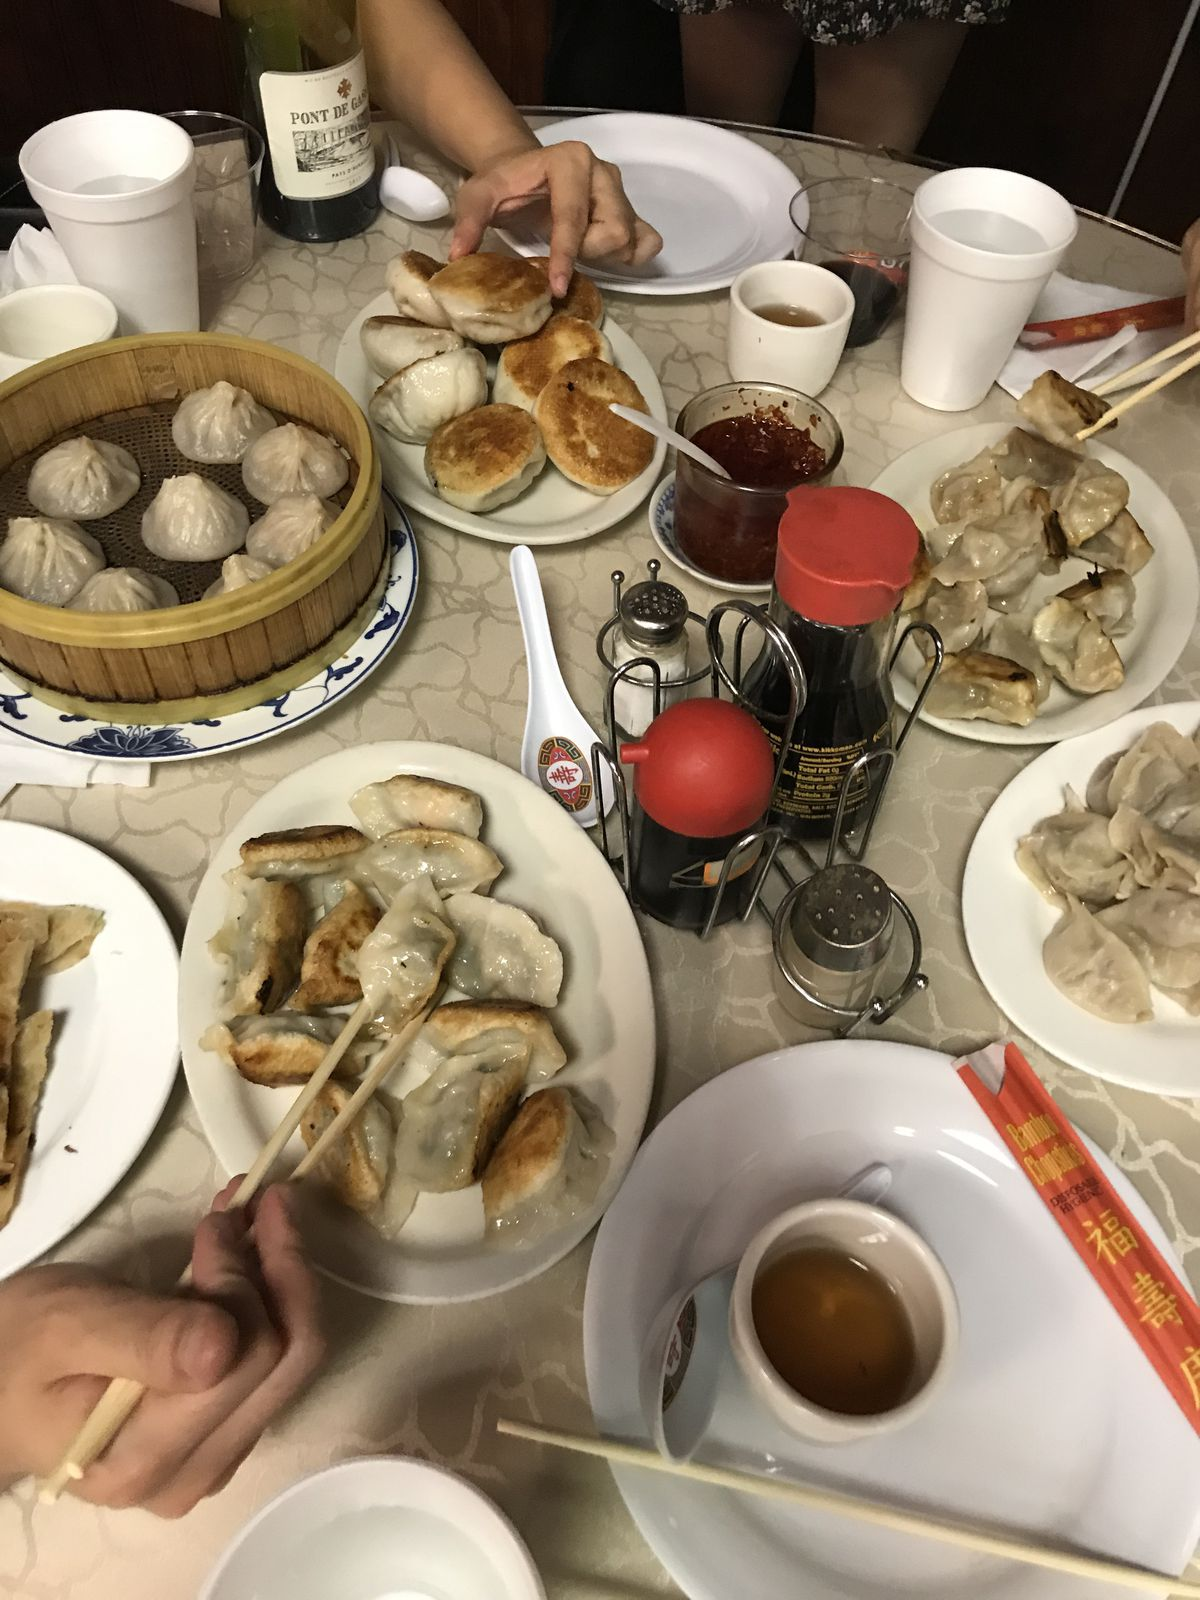 A table filled with dumplings at Northern China Eatery in Doraville, GA